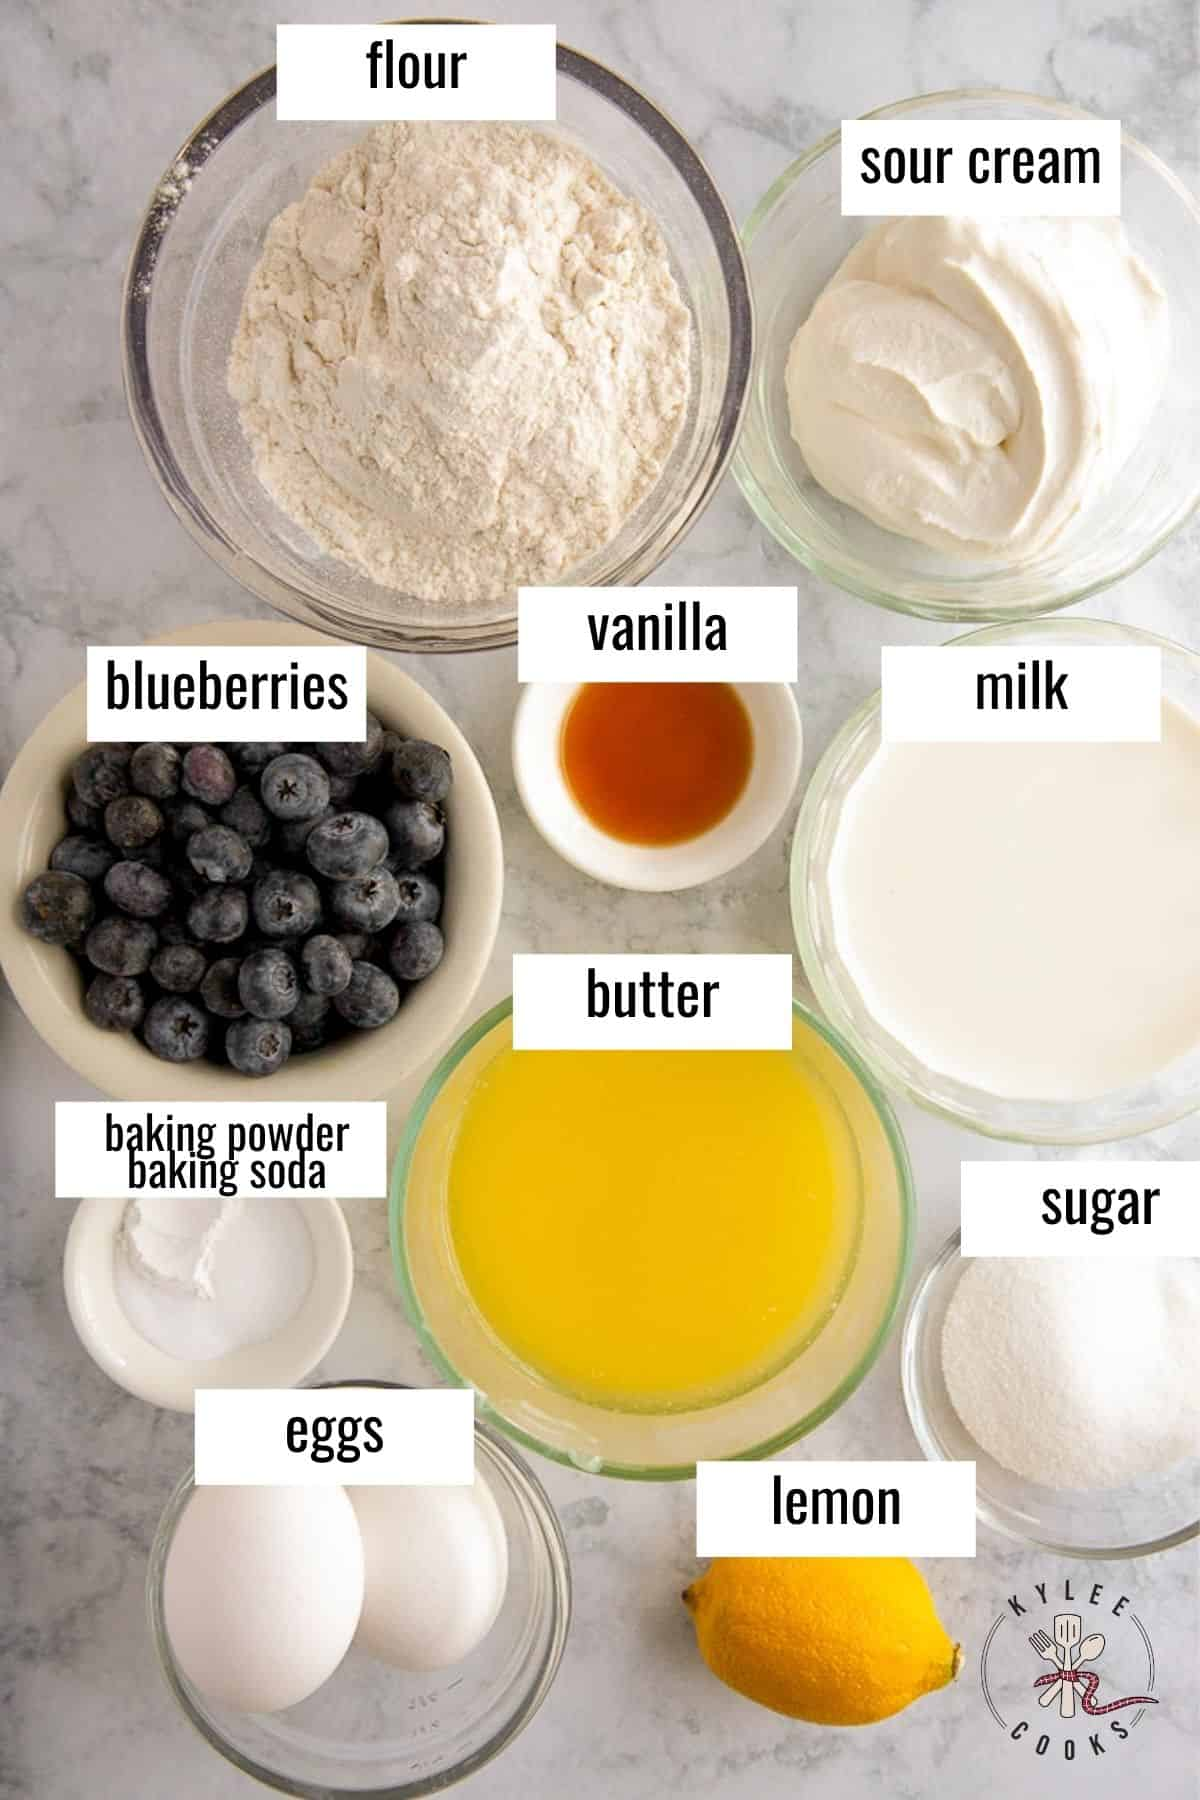 ingredients to make blueberry pancakes laid out and labeled